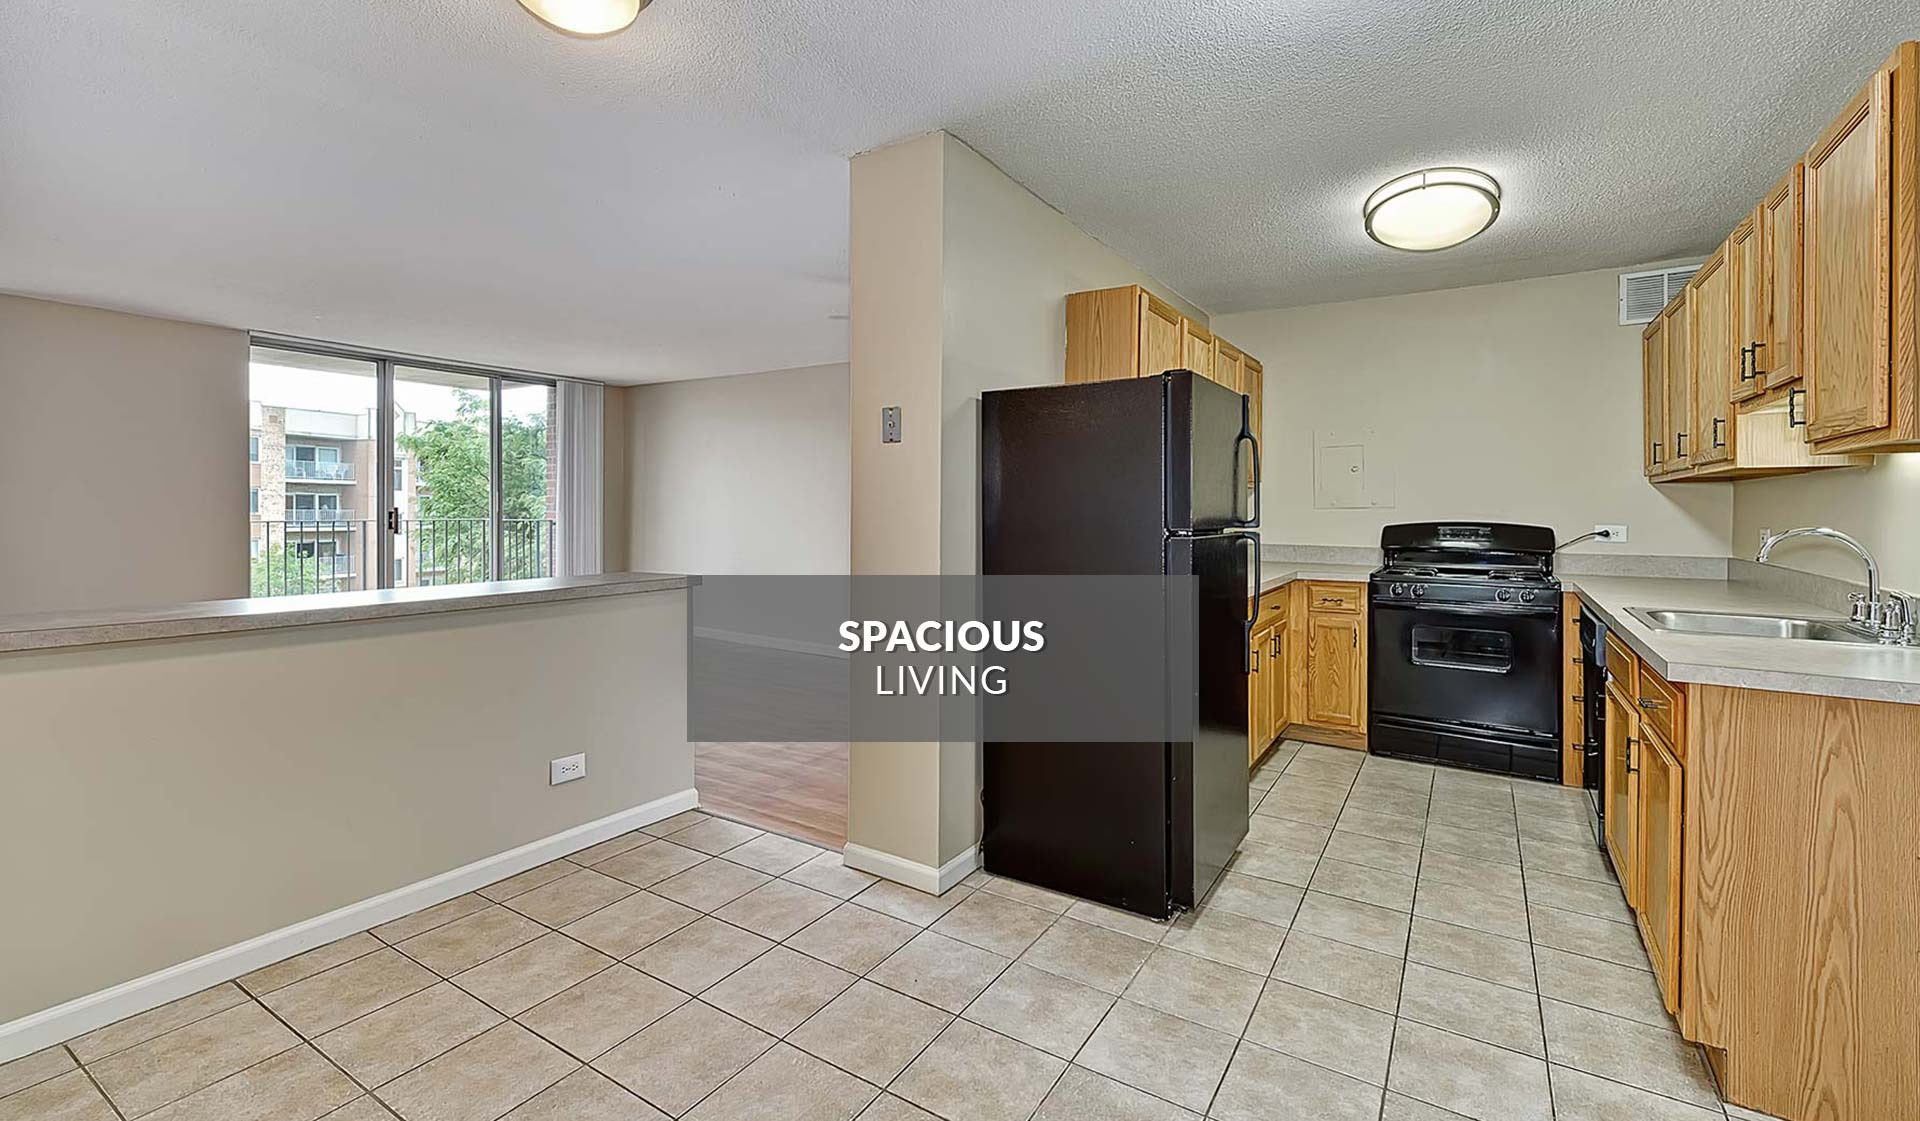 2200 Grace - Spacious Living - Lombard, IL